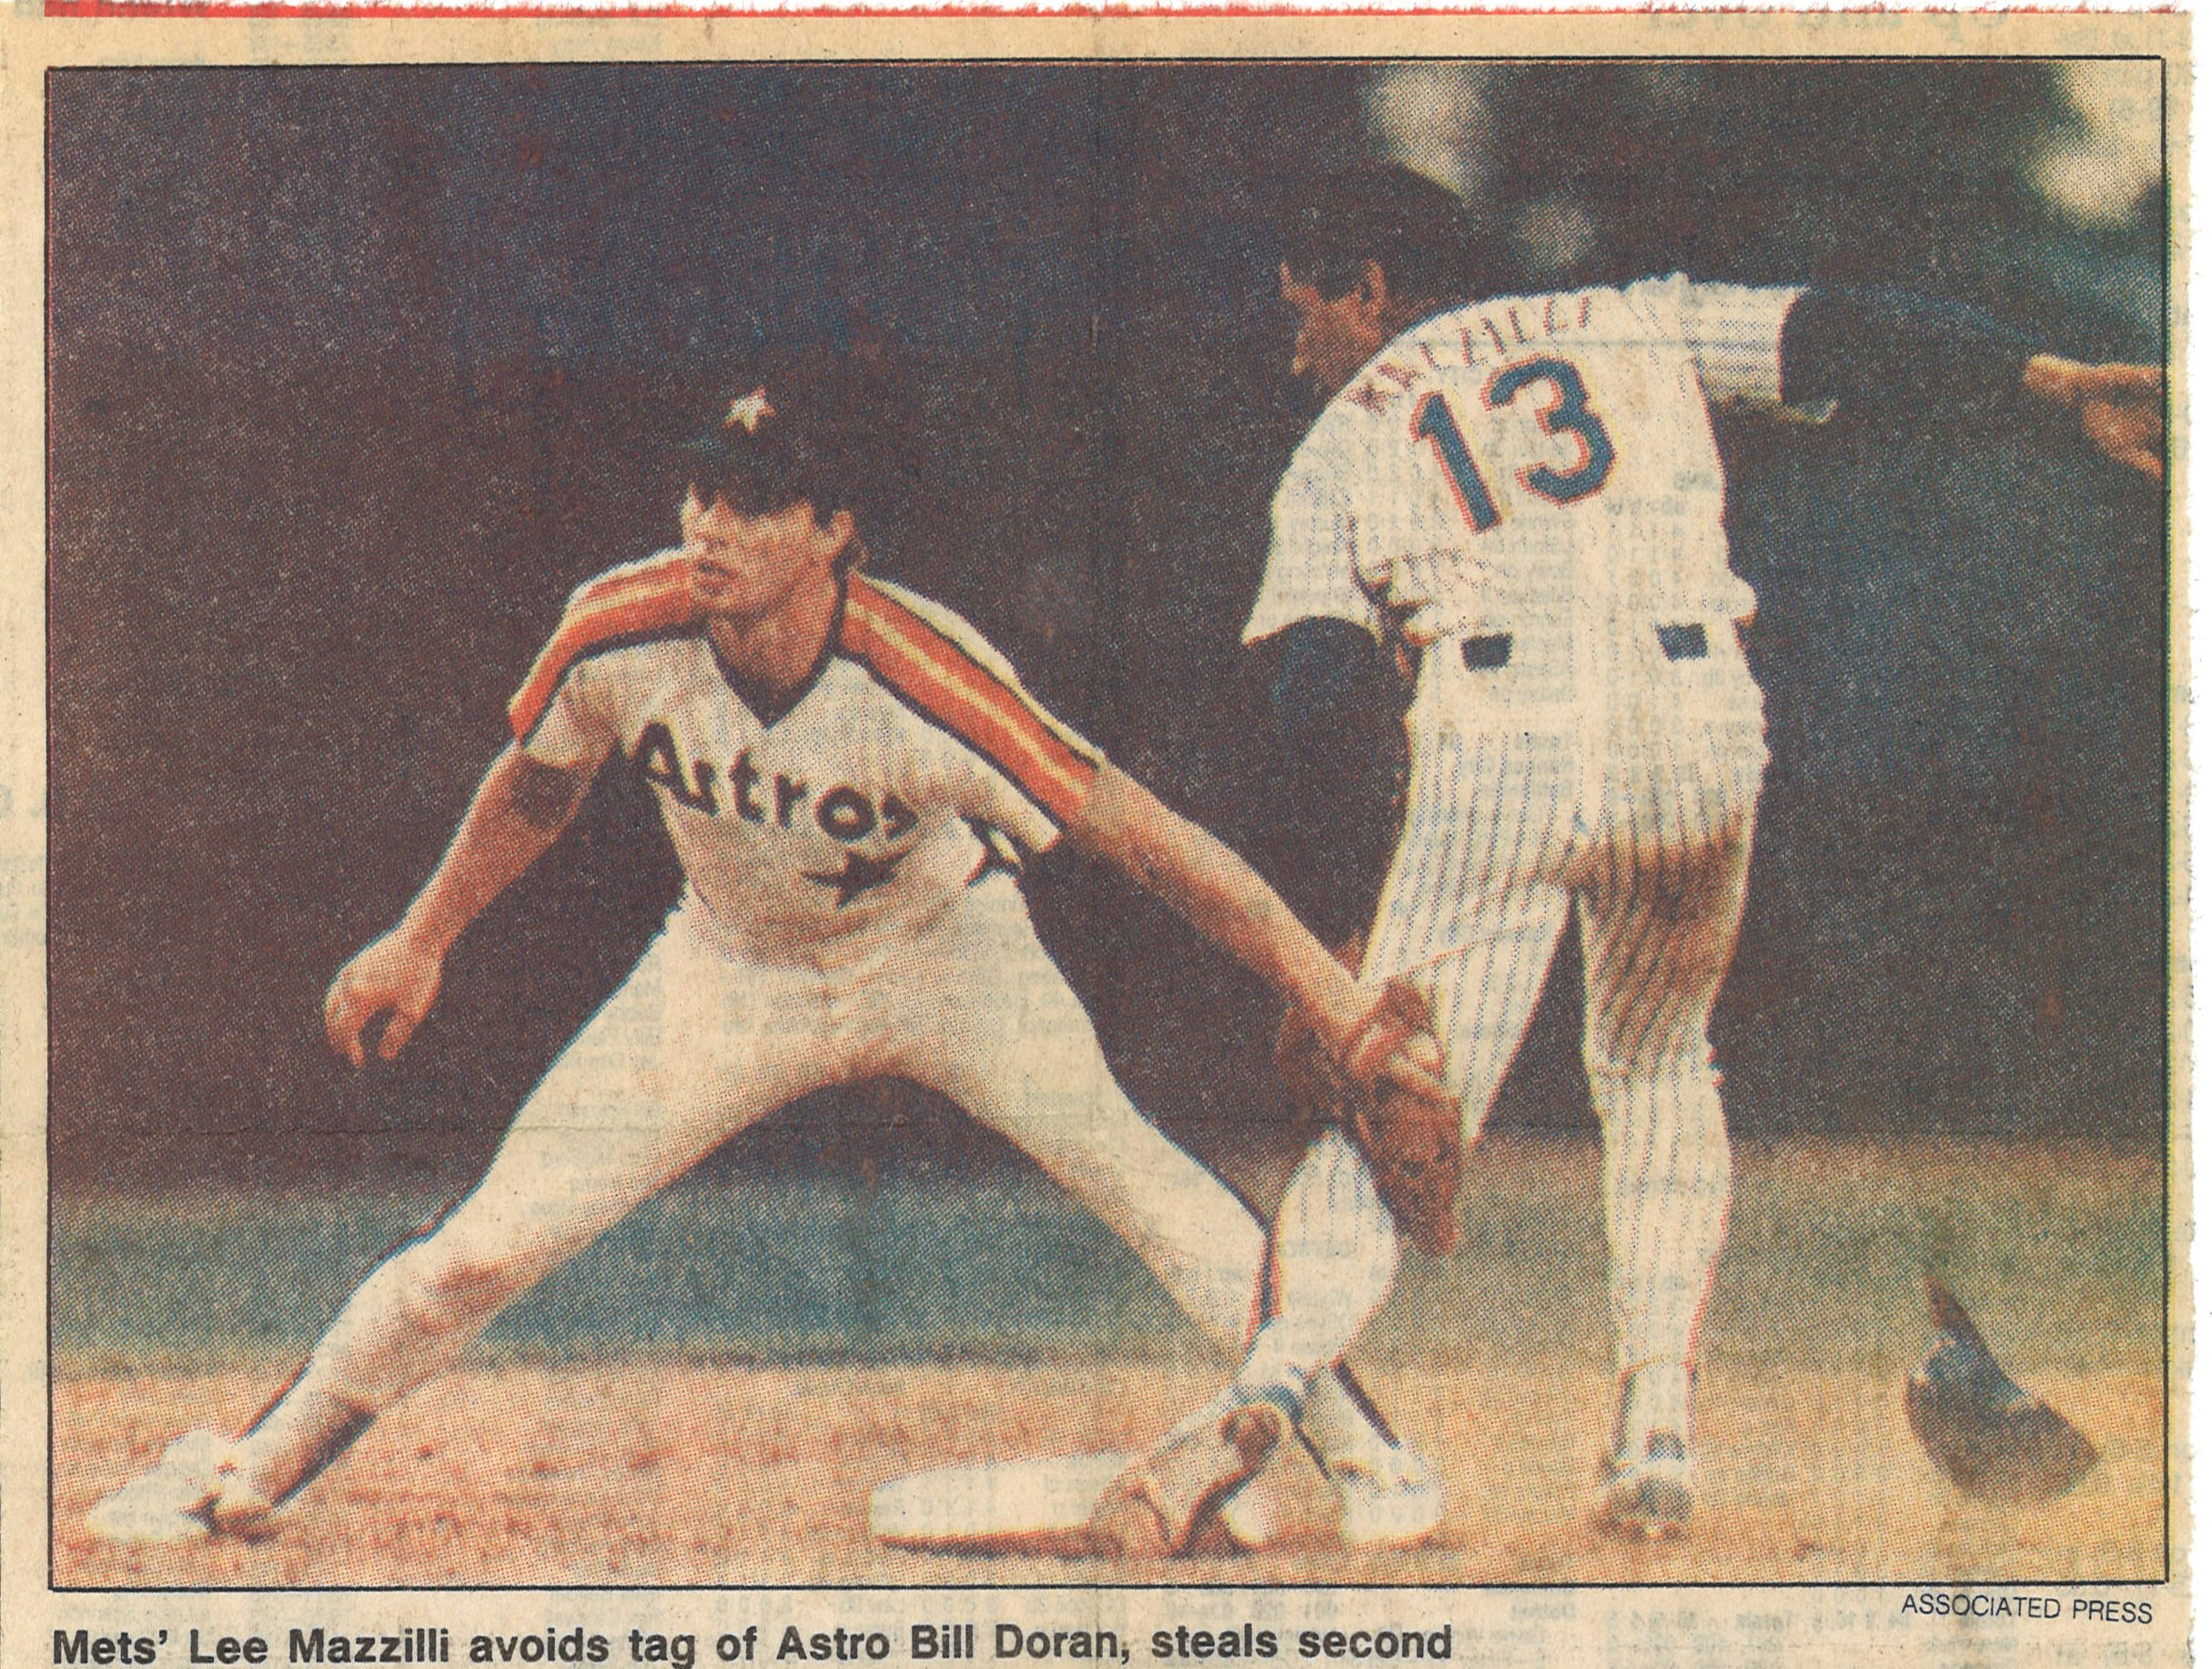 Burt Hooton didn't consider himself an old-timer at 37 after two years of retirement from the majors in this article from the Caller-Times on July 25, 1987.